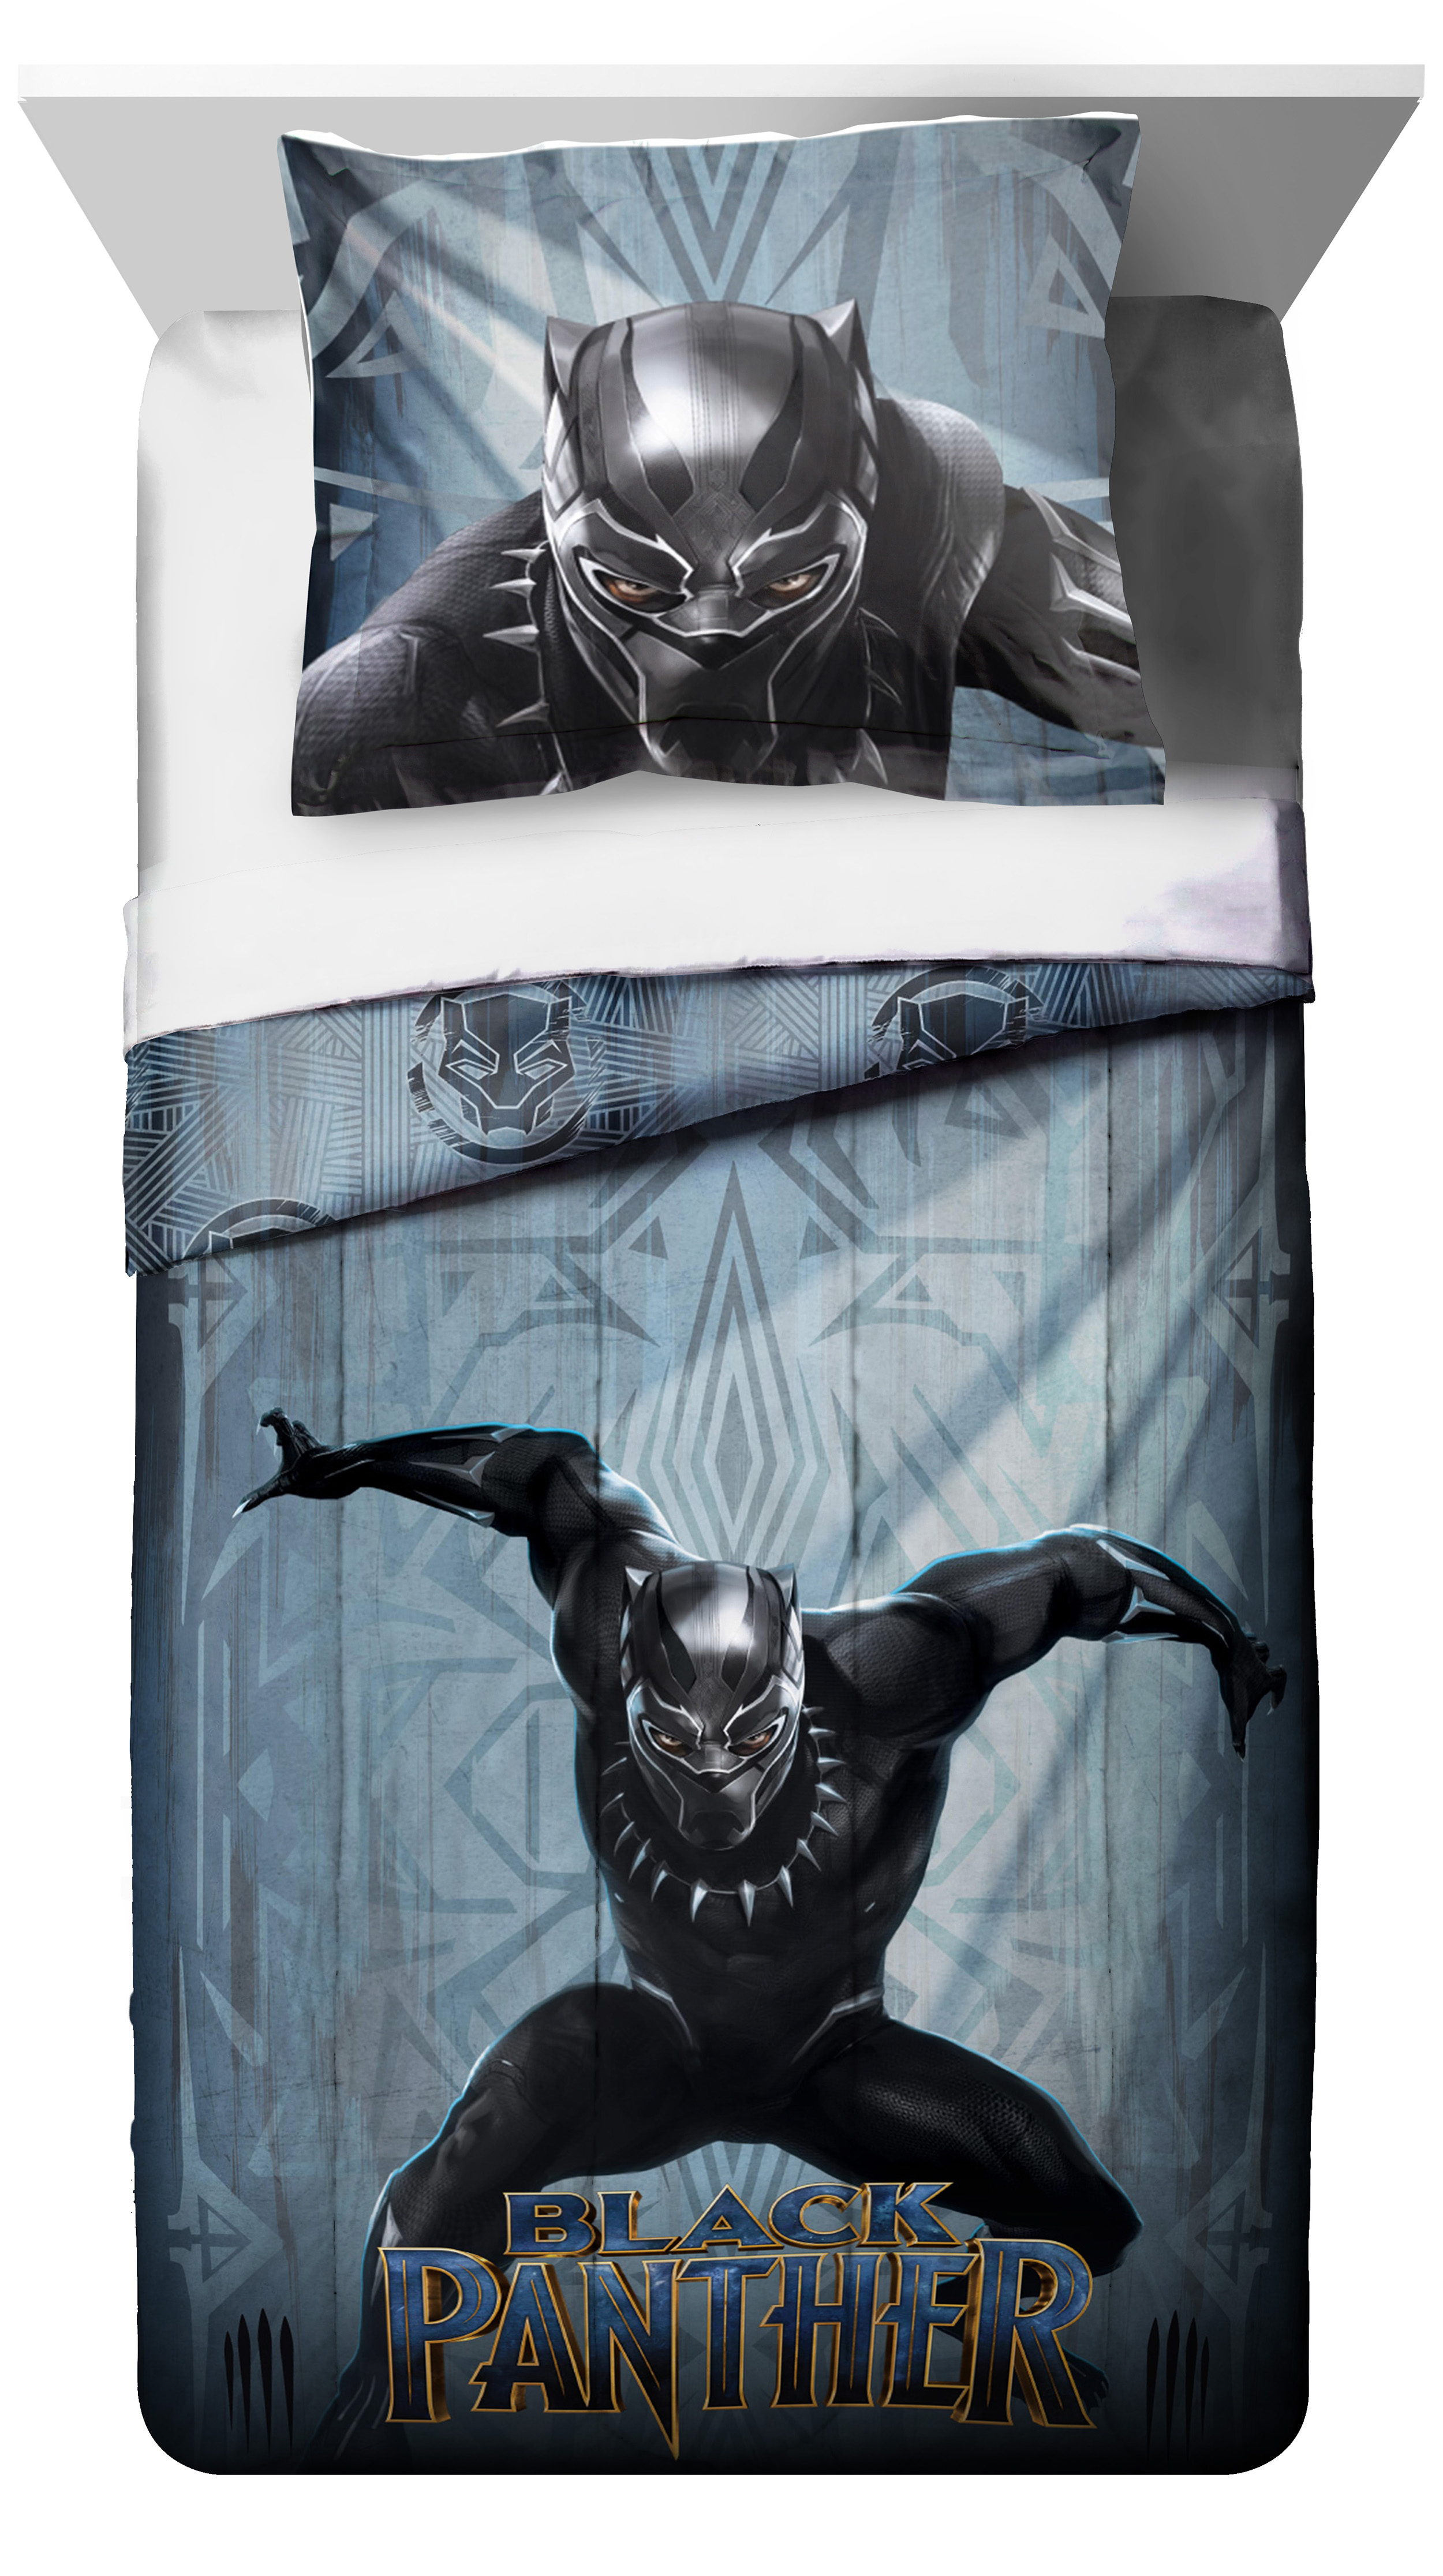 Black Panther 2 Piece Twin Full Comforter and Sham Set, Kid's Bedding by Jay Franco and Sons, Inc.